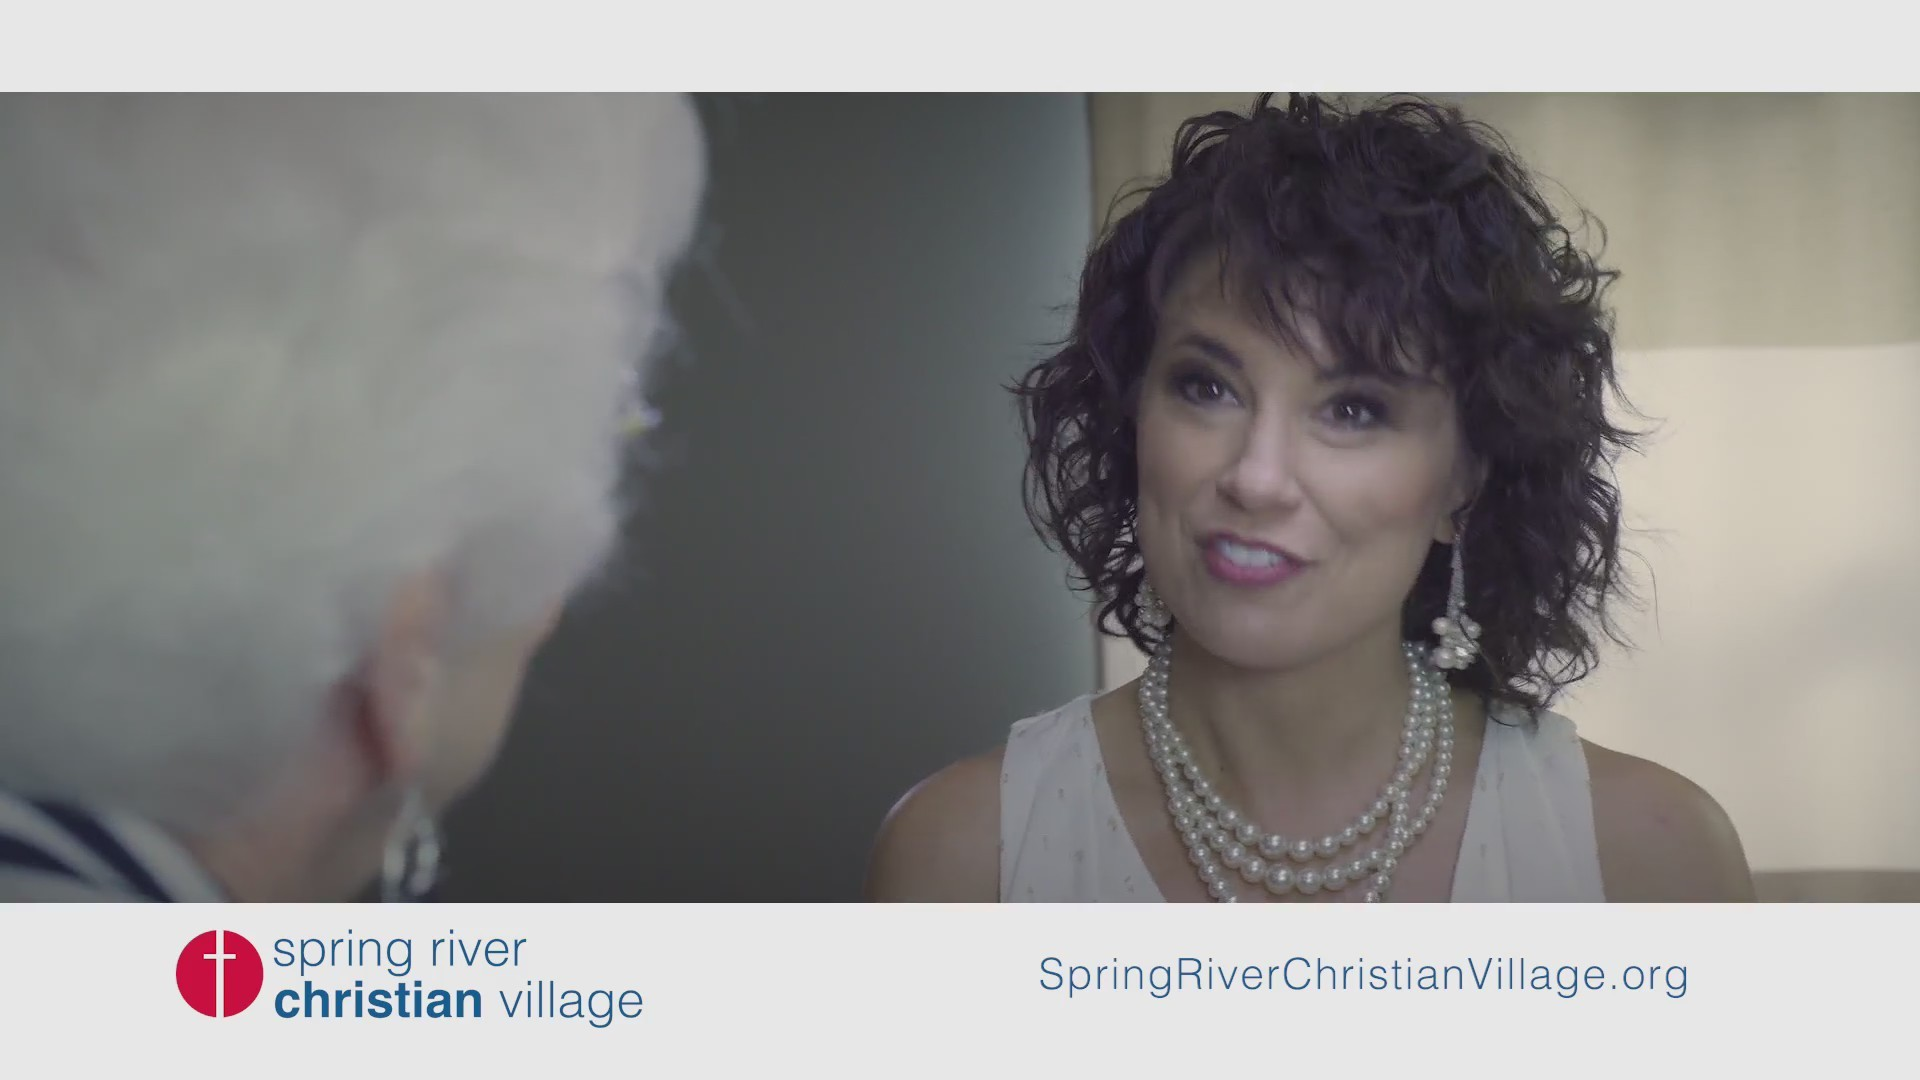 Spring River Christian Village - Sonya 1 (012419)